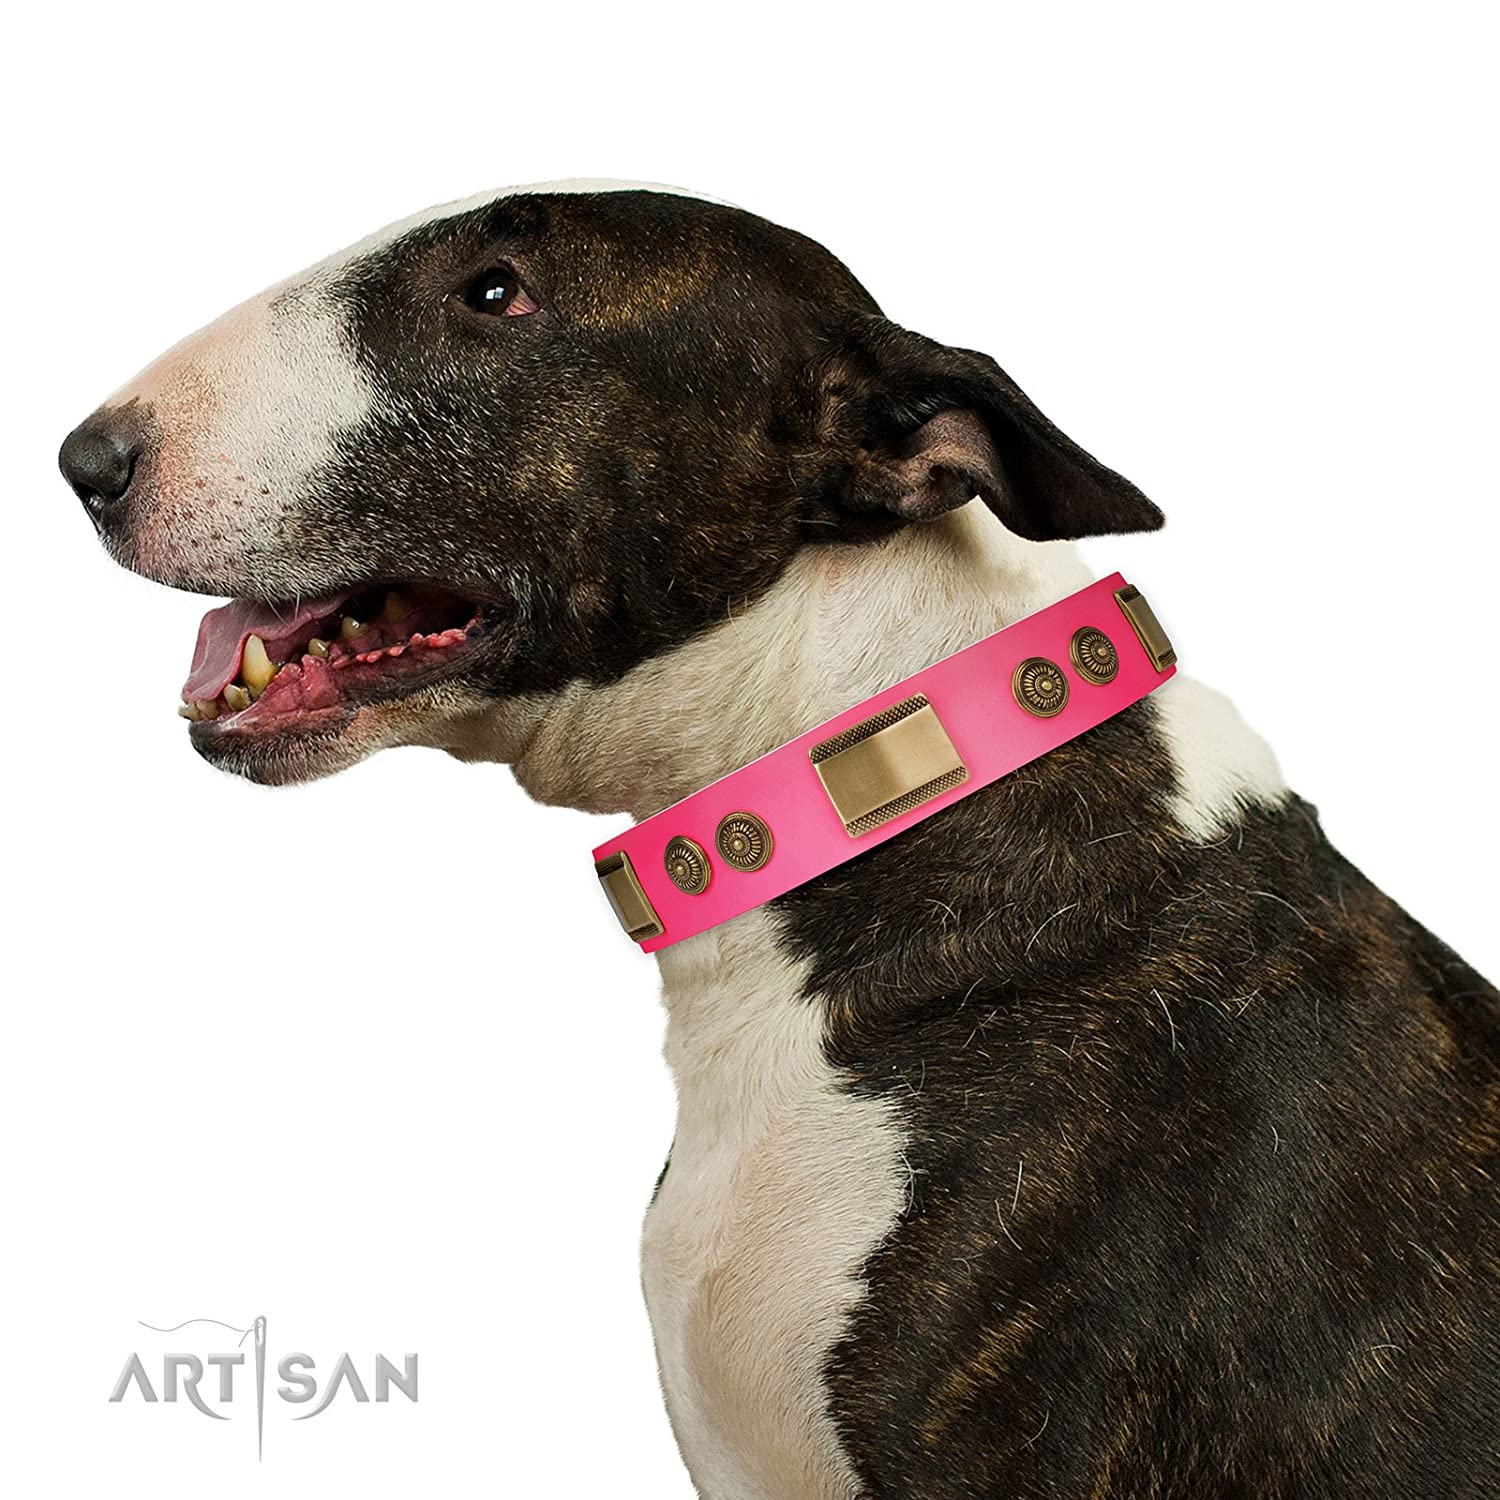 Fits for 22 inch (55cm) dog's neck size FDT Artisan 22 inch Pink Leather Dog Collar with Brass Decor  Vintage Trimness  1 1 2 inch (40 mm) wide